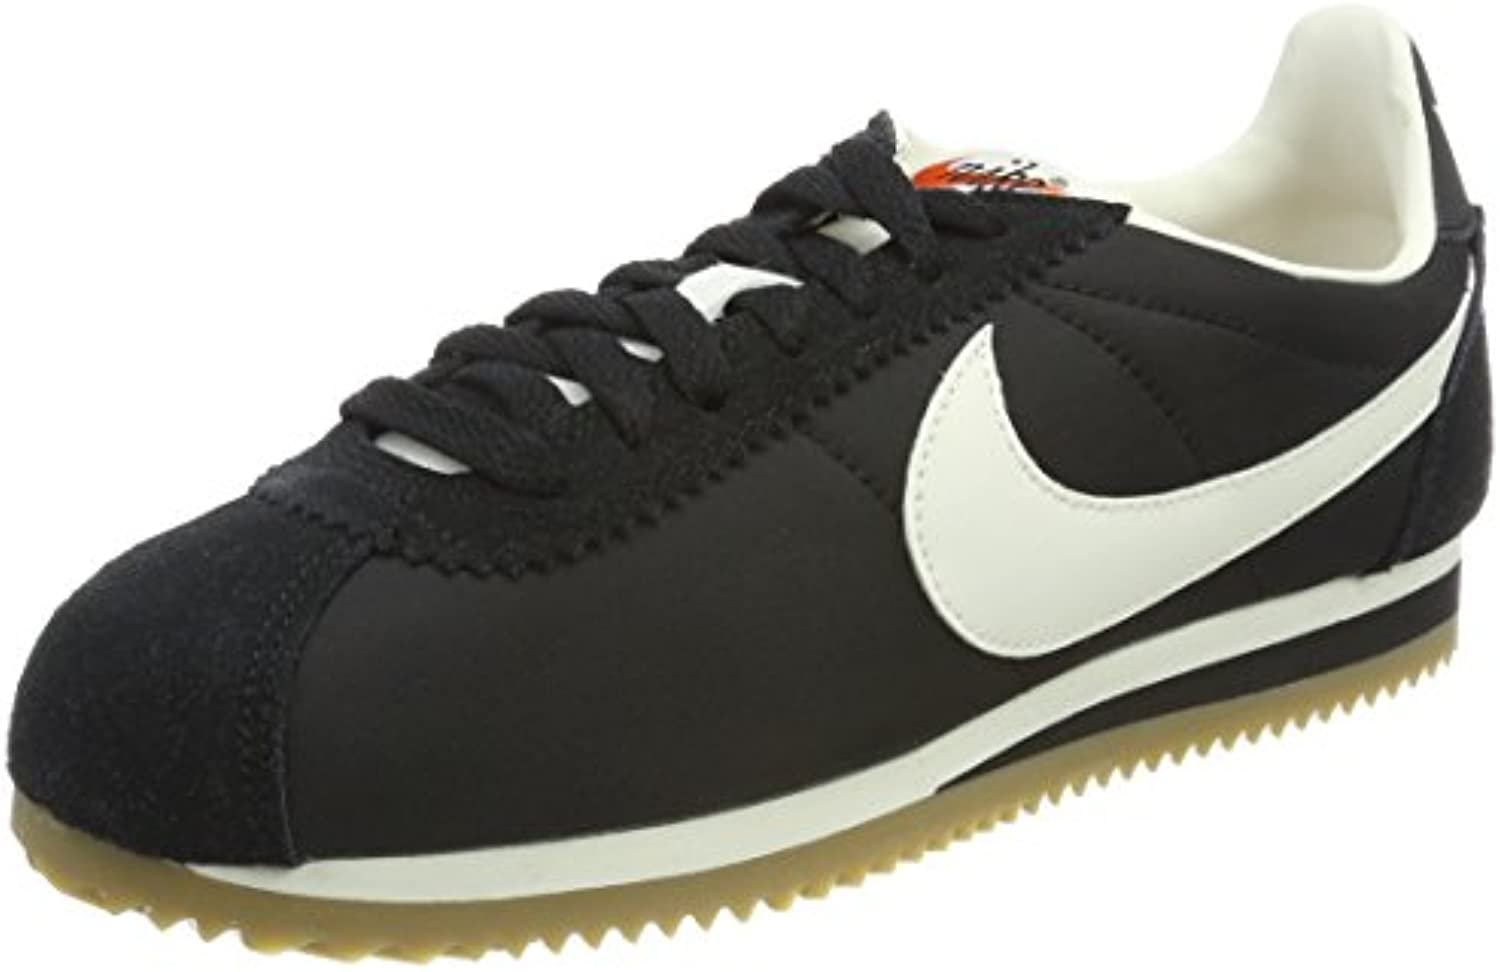 Nike Herren Classic Cortez Nylon Premium Sneaker  Black/Sail Gum Light Brown